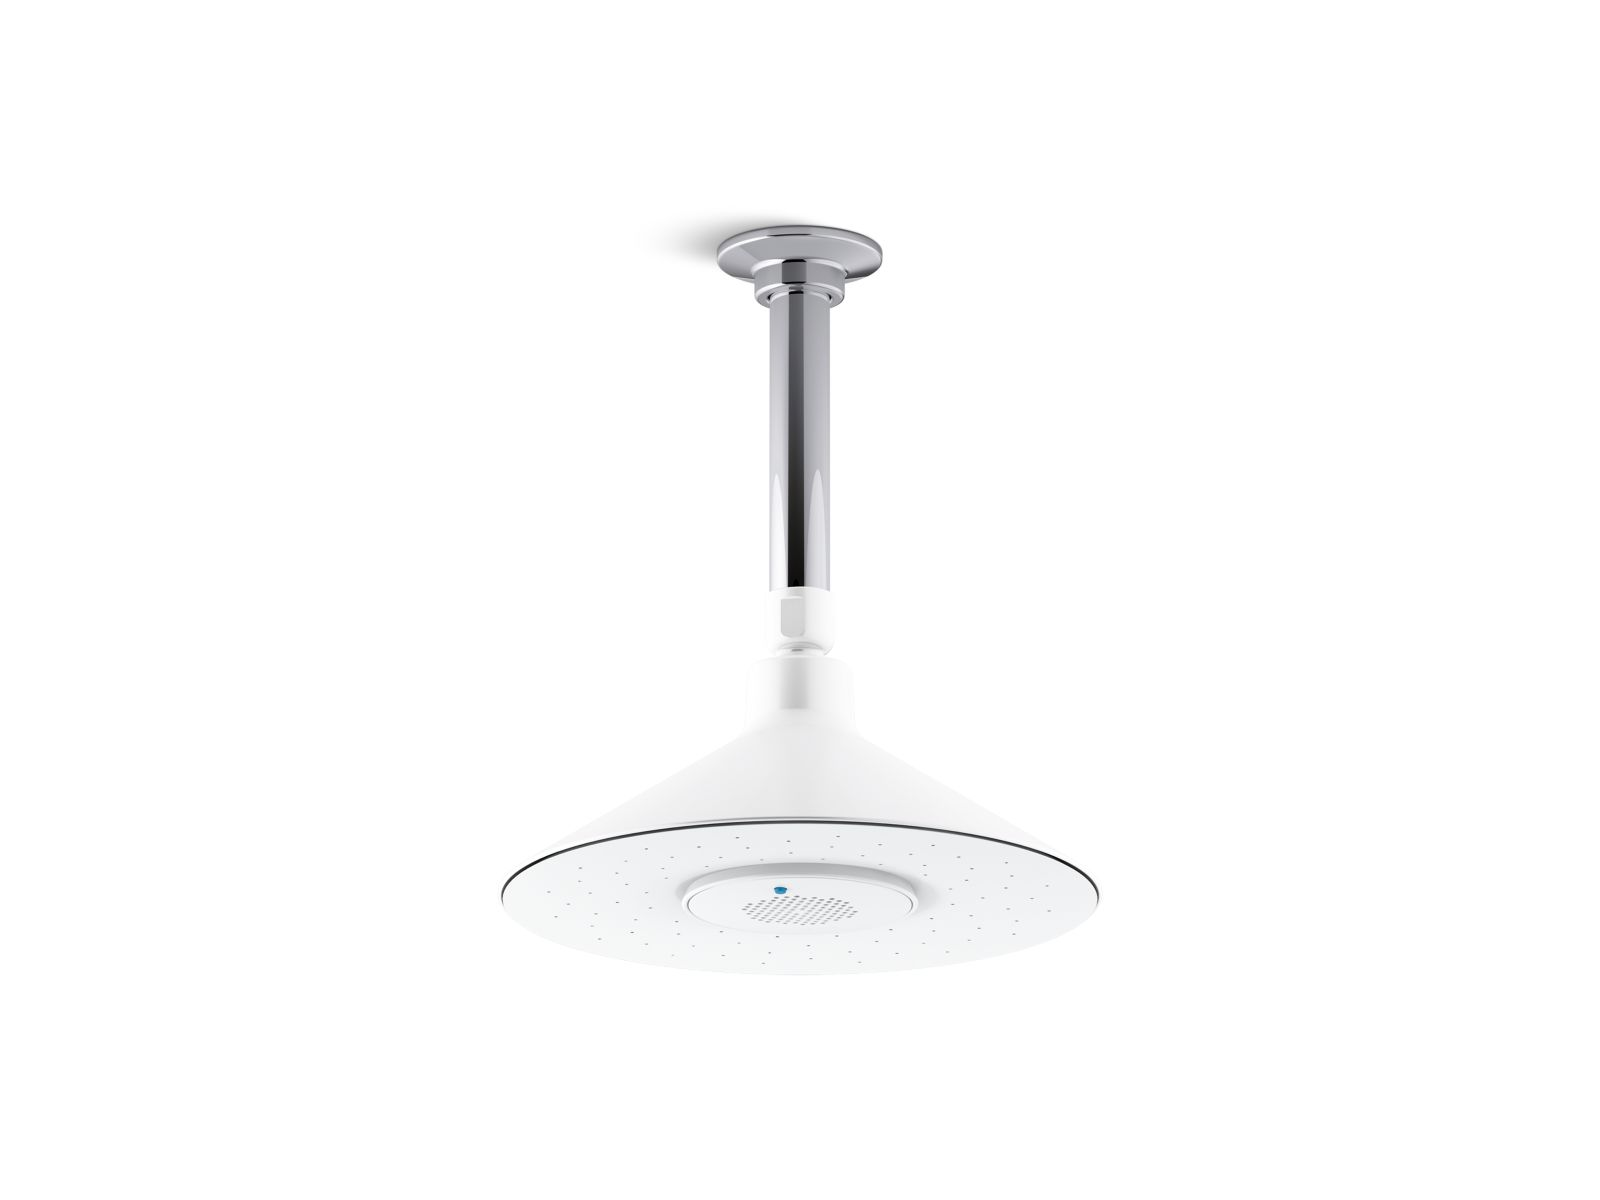 Kohler Moxie® K-99105-E-0 2.0 gpm rainhead with wireless speaker White